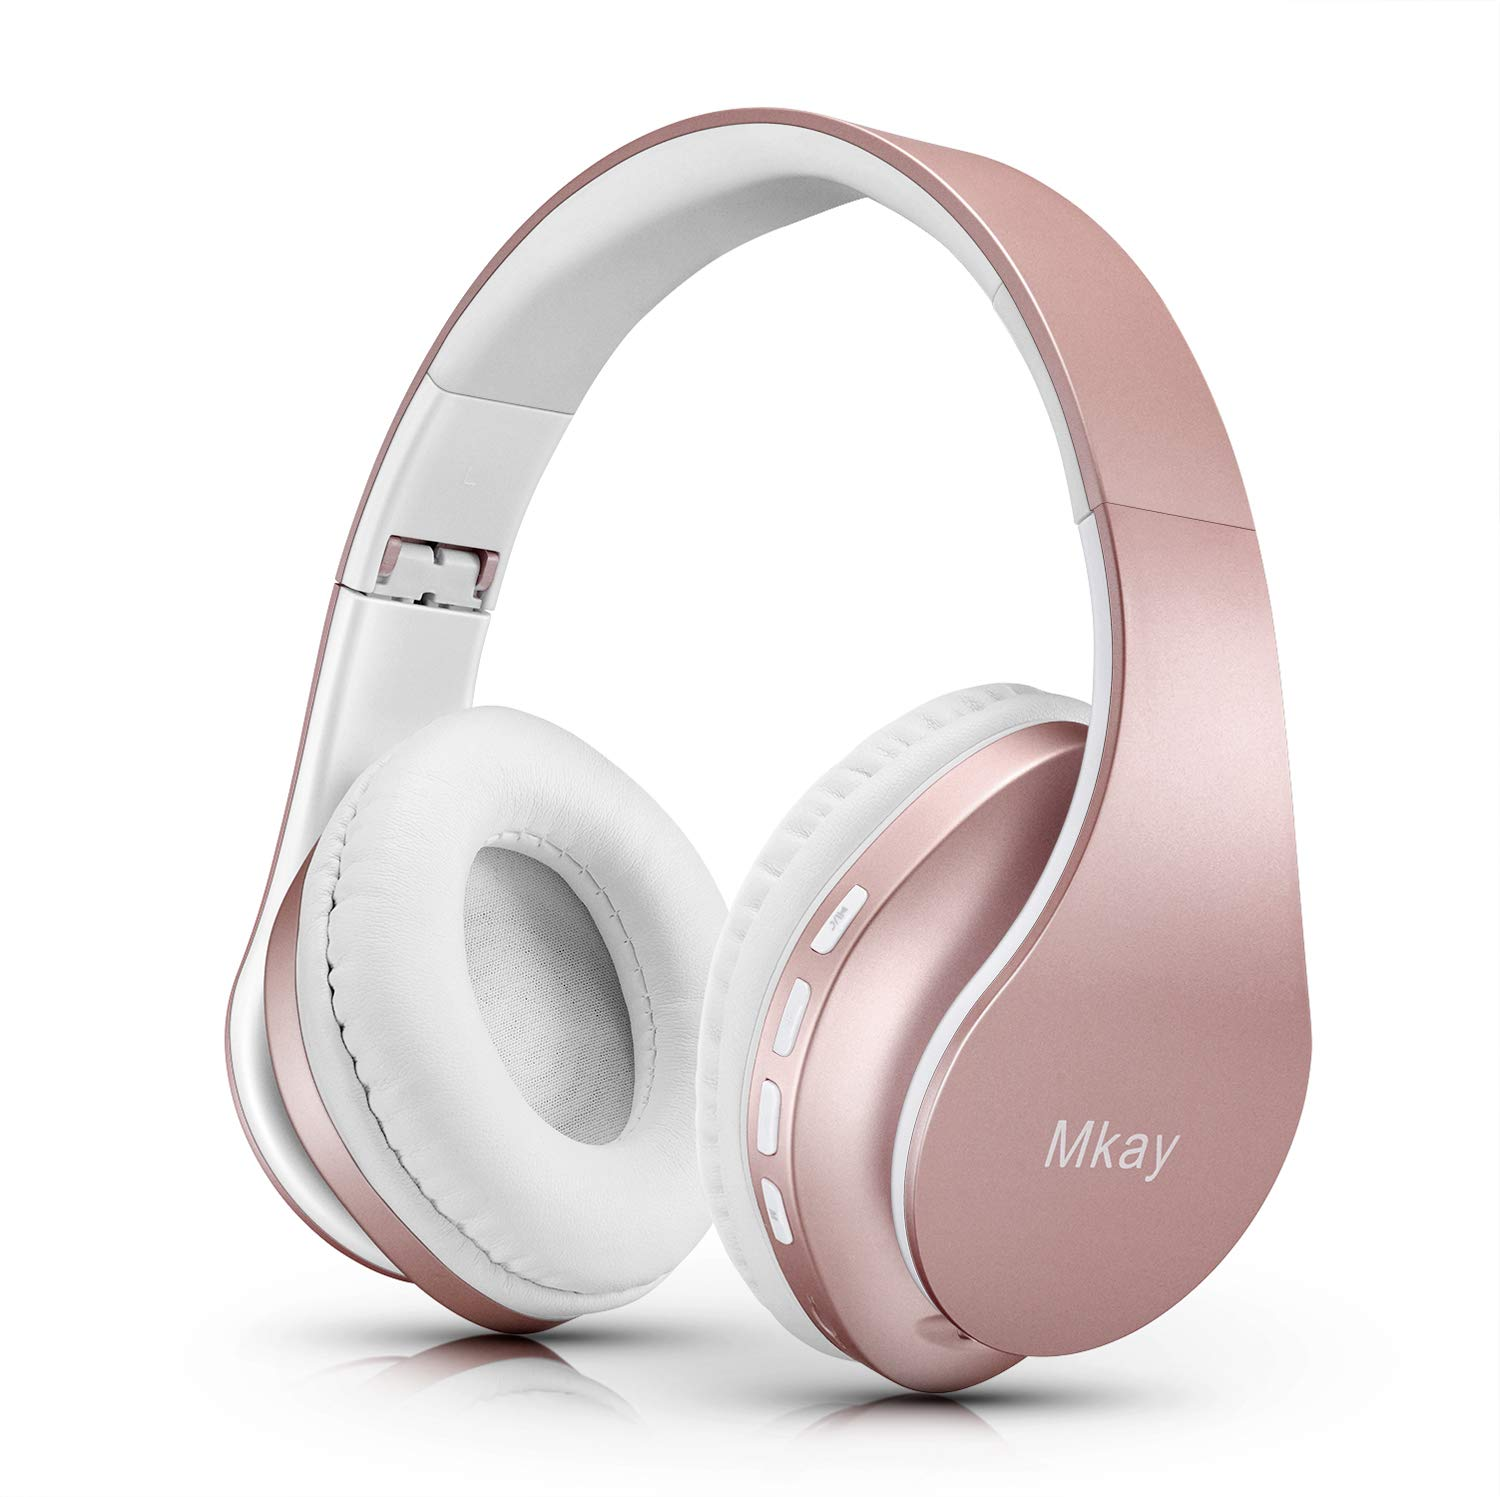 MKay Bluetooth Headphones Wireless, Over Ear Headset V5.0 with Microphone, Foldable & Lightweight, Support Tf Card MP3 Mode and Fm Radio for Cellphones Laptop TV-Rose Gold